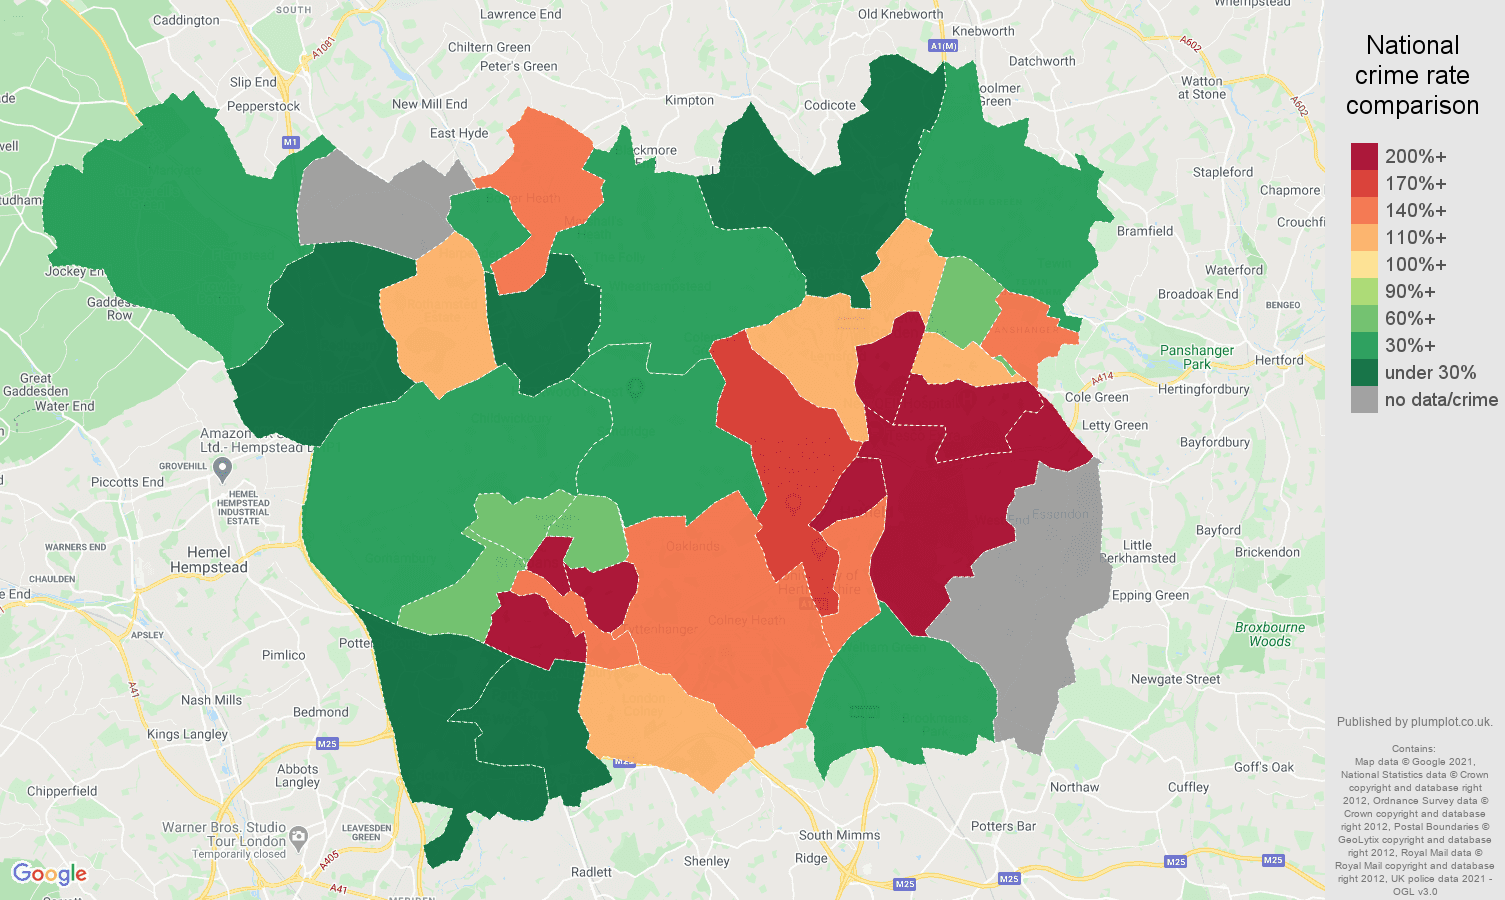 St Albans bicycle theft crime rate comparison map